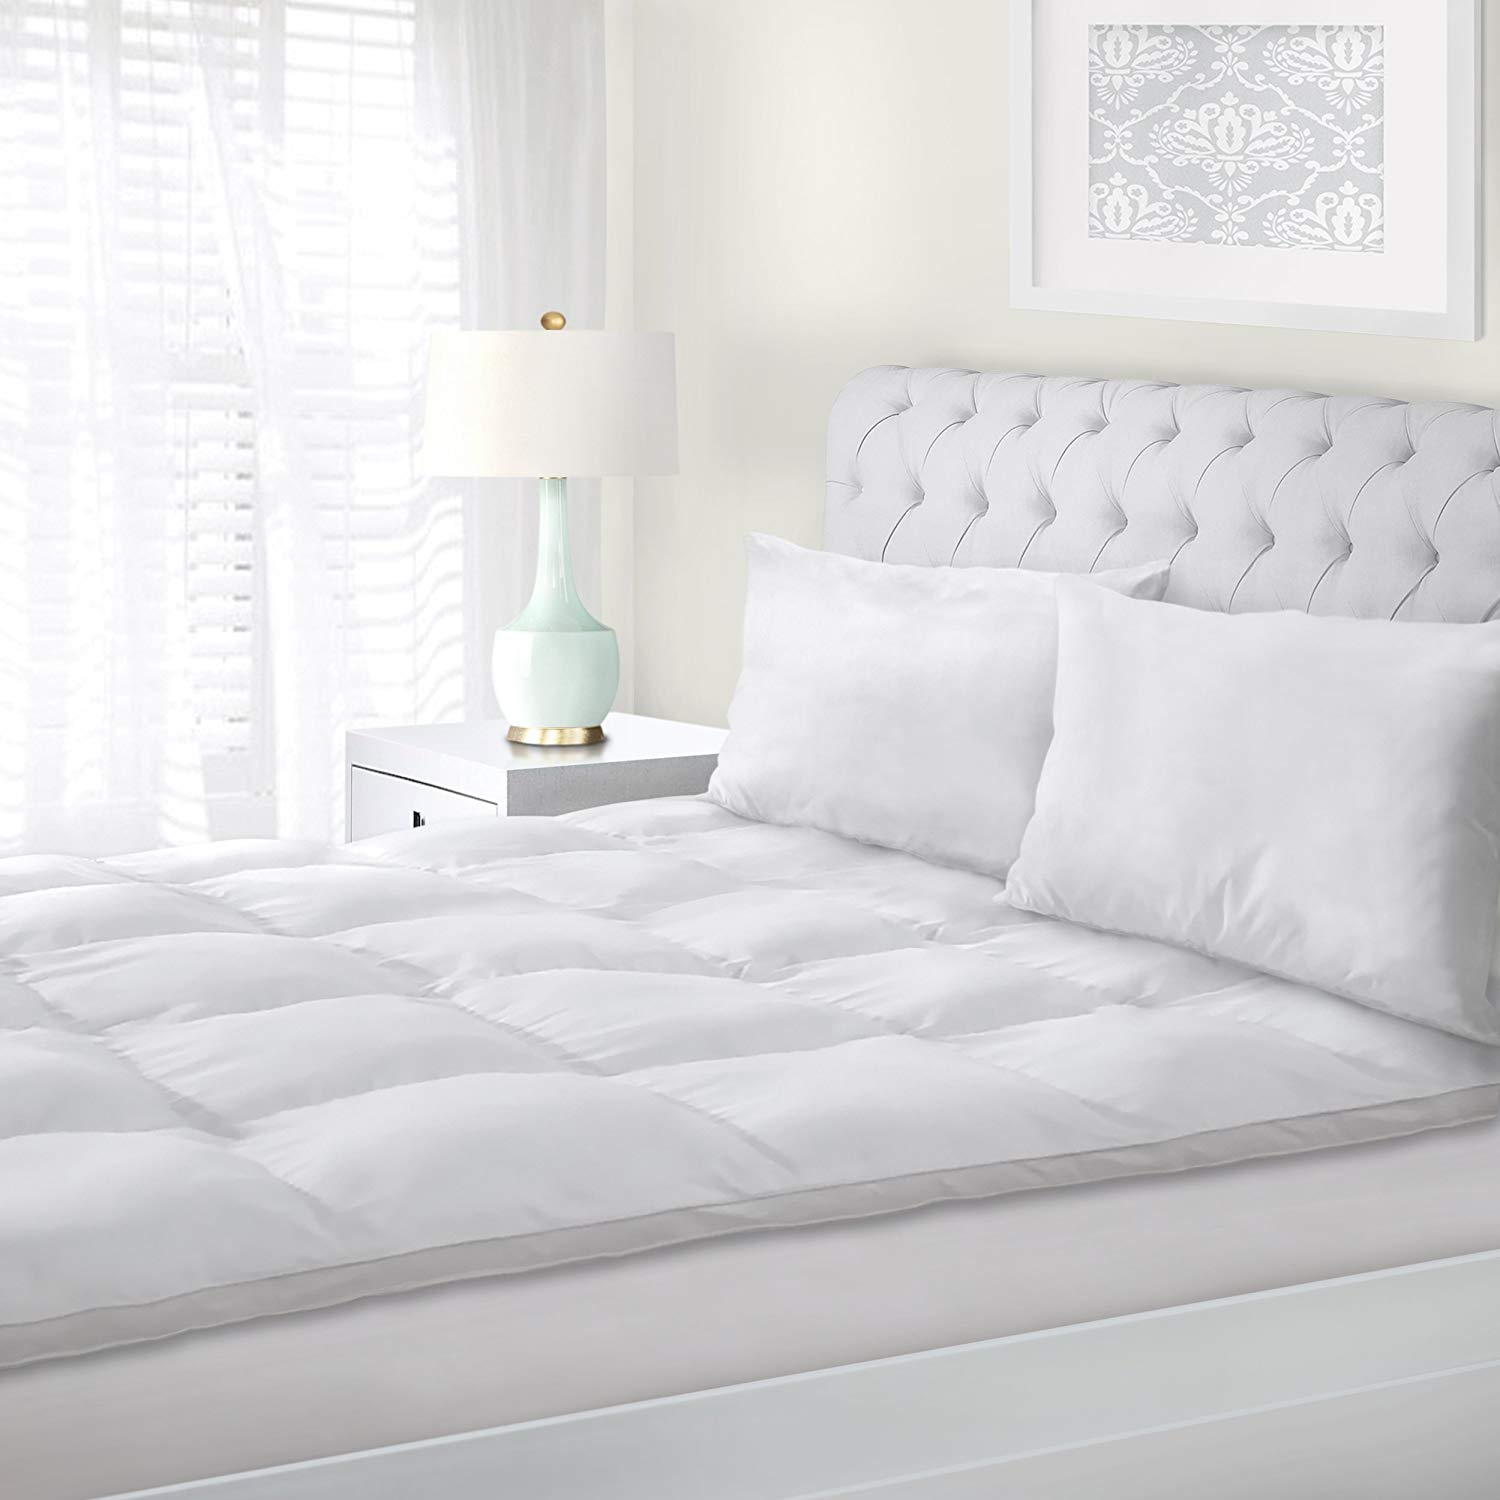 Superior Feather Mattress Topper Review by www.snoremagazine.com